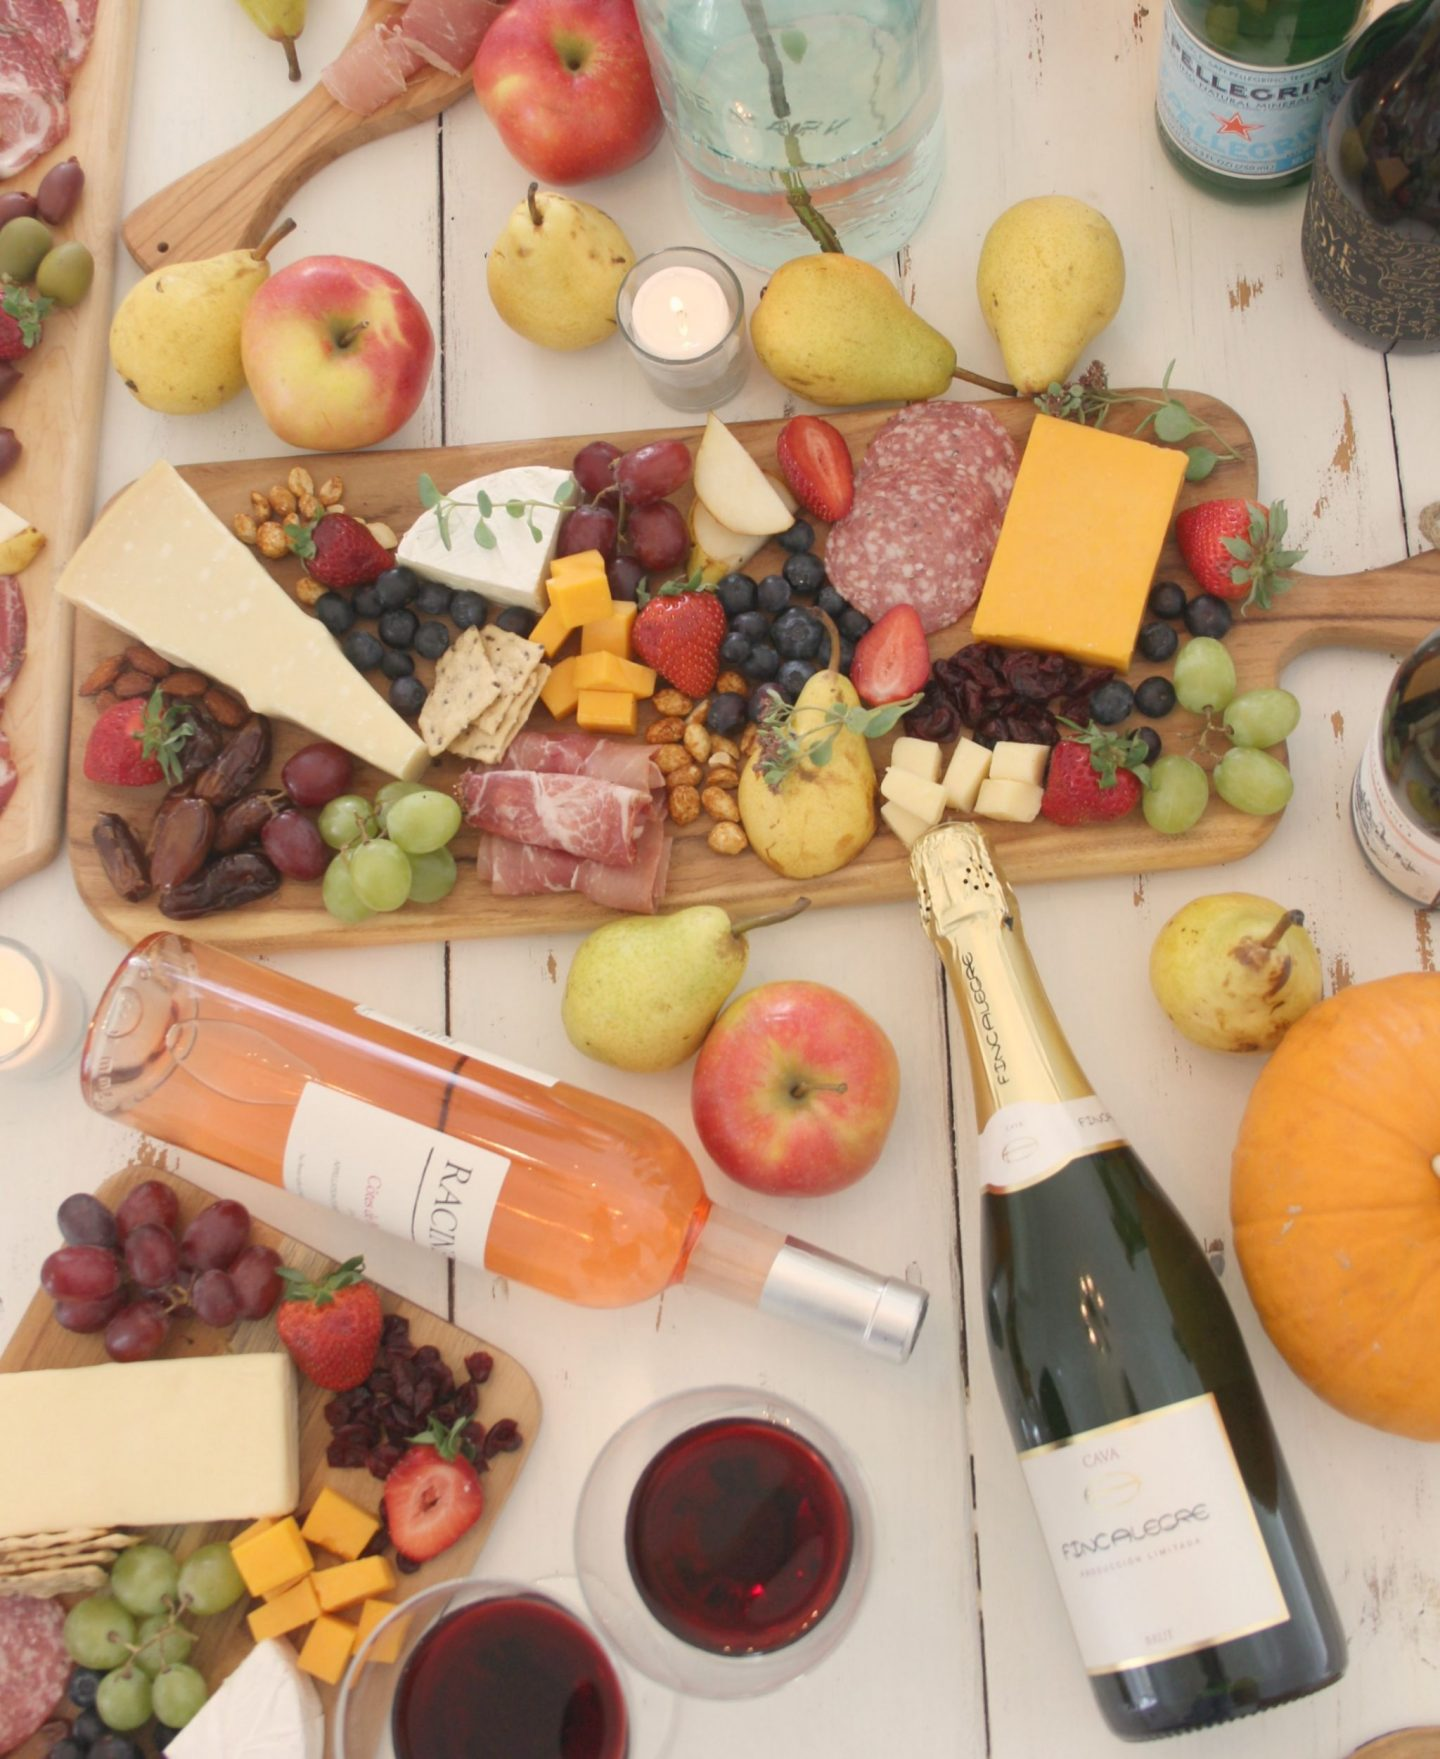 Vibrant and colorful, these cheeseboards with charcuterie and farmers market freshness are perfect for simple entertaining and an elegant tablescape. FALL In Love With Autumn: Pre-PEAR Yourself for Yummy Pear Inspiration Ahead!#grazeboard #cheeseboard